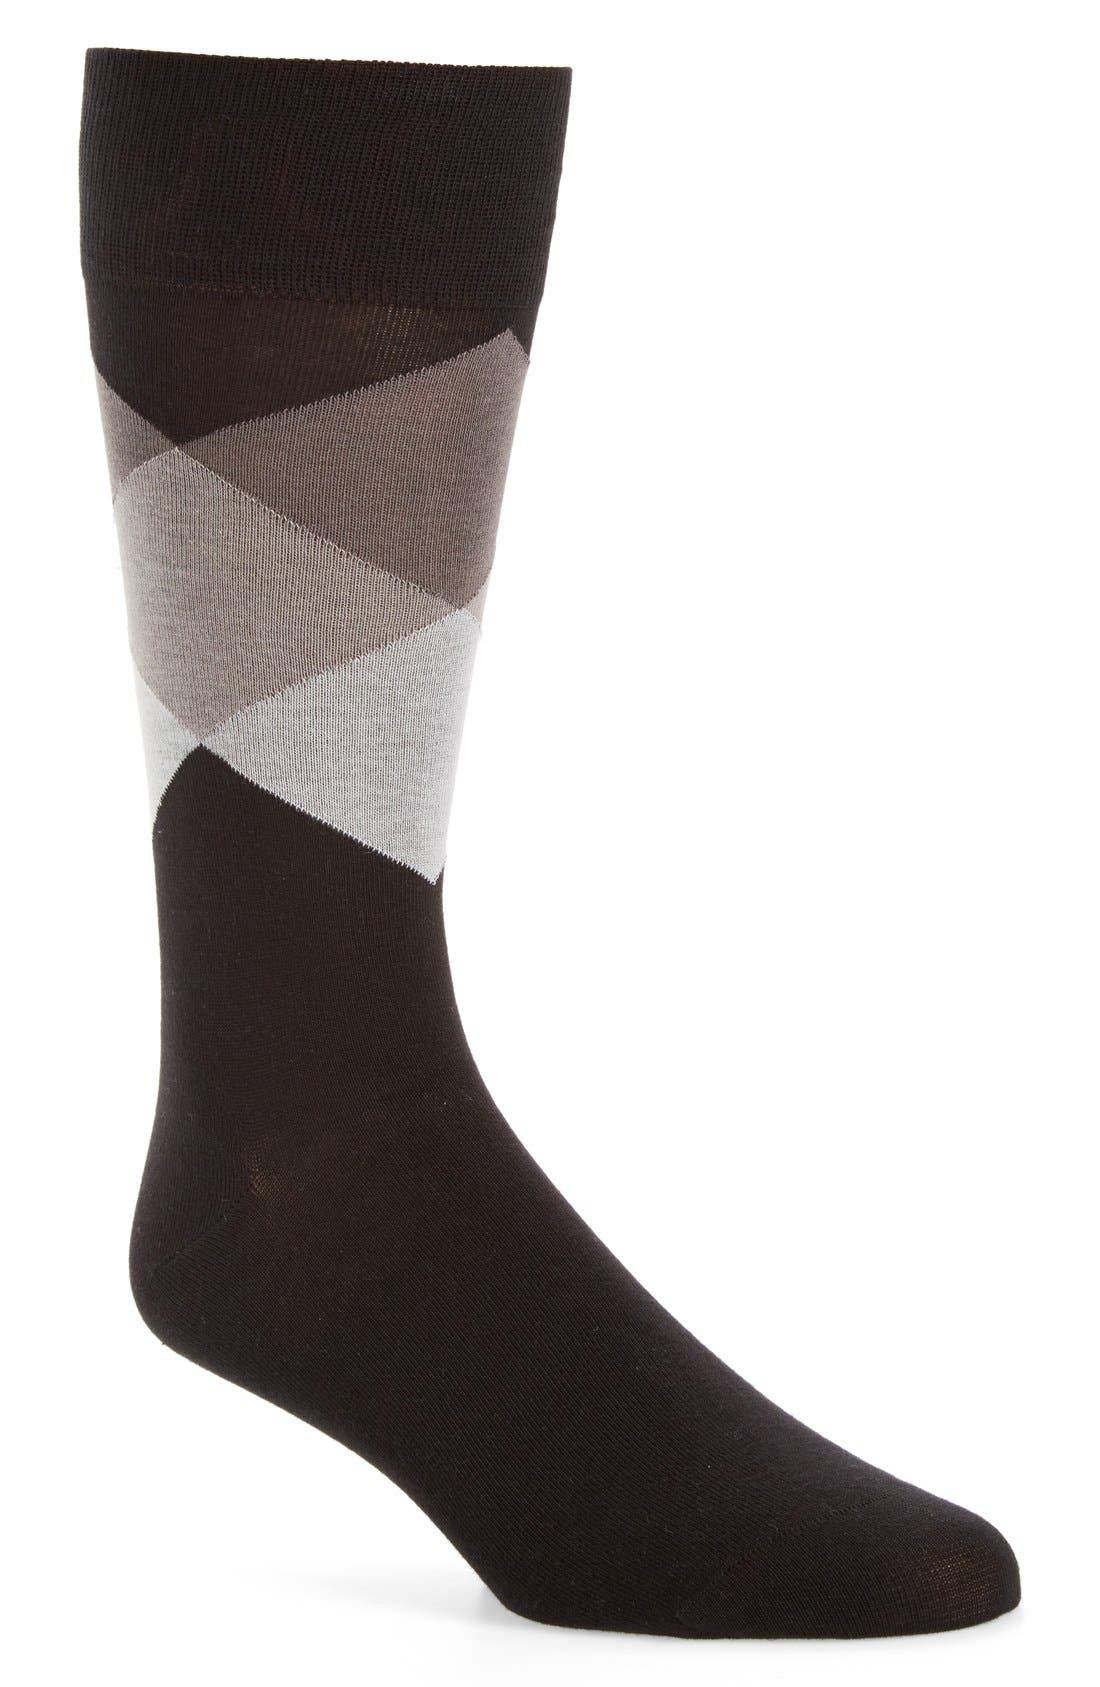 Alternate Image 1 Selected - Cole Haan Large Diamond Crew Socks